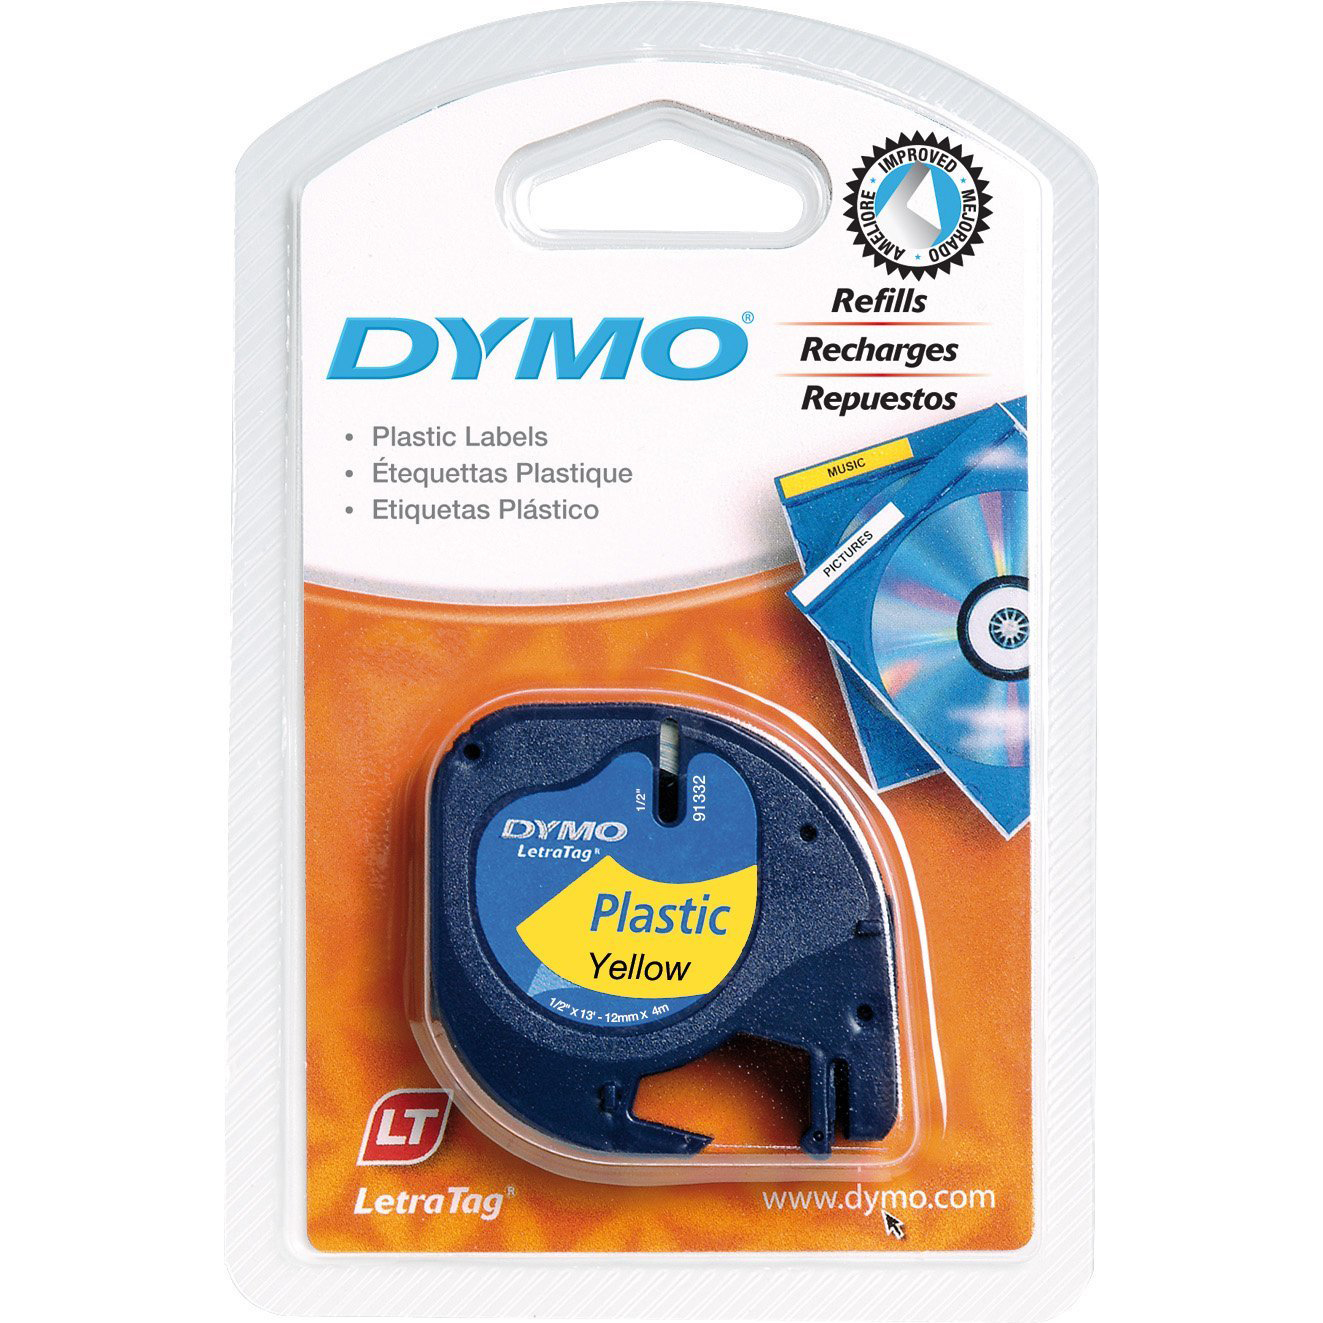 Dymo LetraTag S0721620 (91202) Plastic Label Tape 12mm x 4m - Black on Yellow (pc)